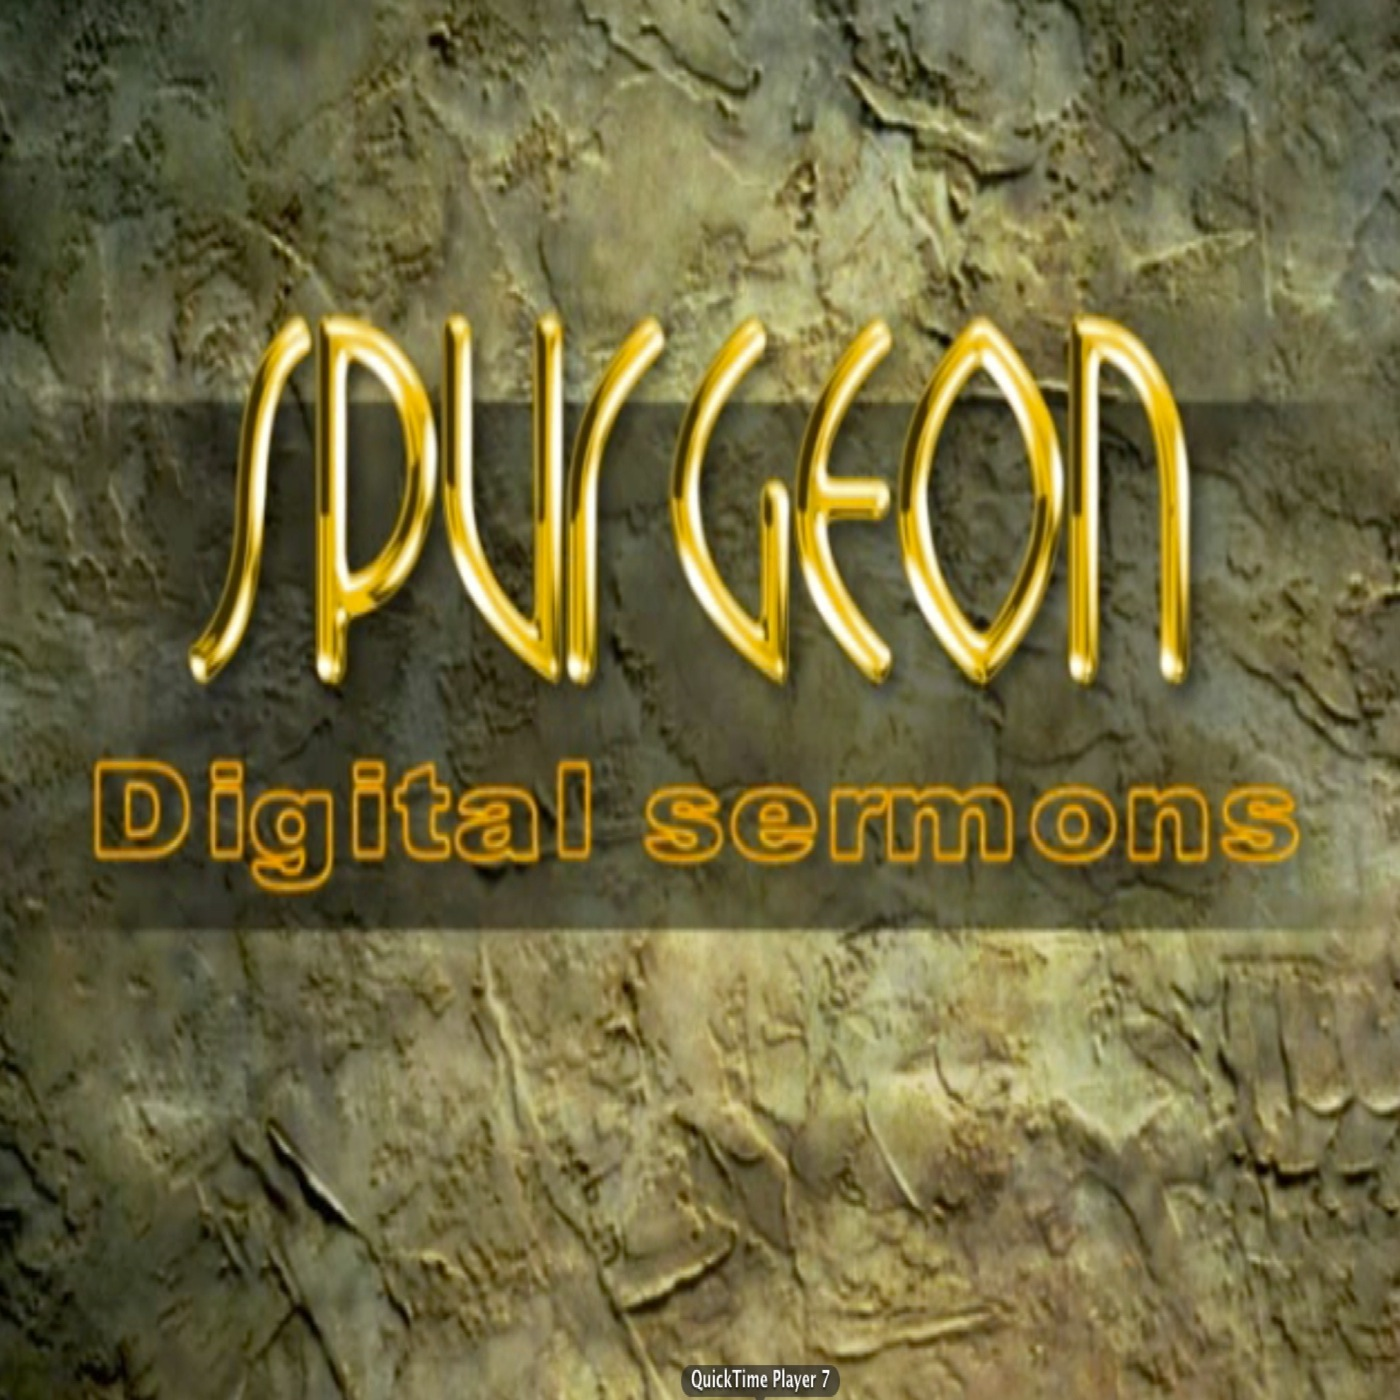 Spurgeon Digital